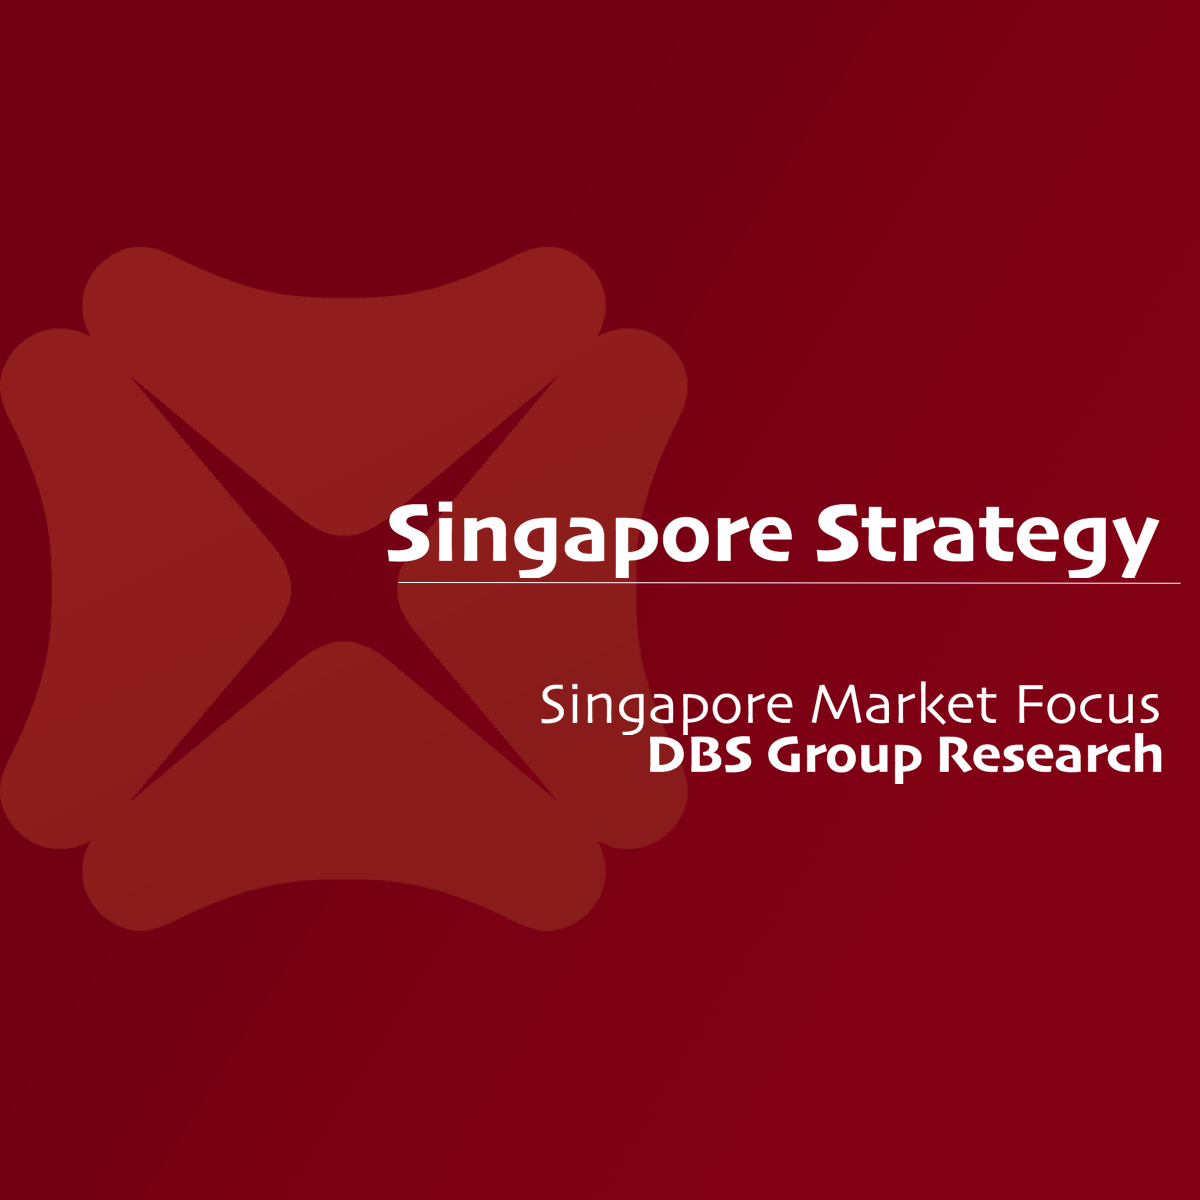 Singapore Market Focus - DBS Vickers 2017-10-13: Checking Up Gains